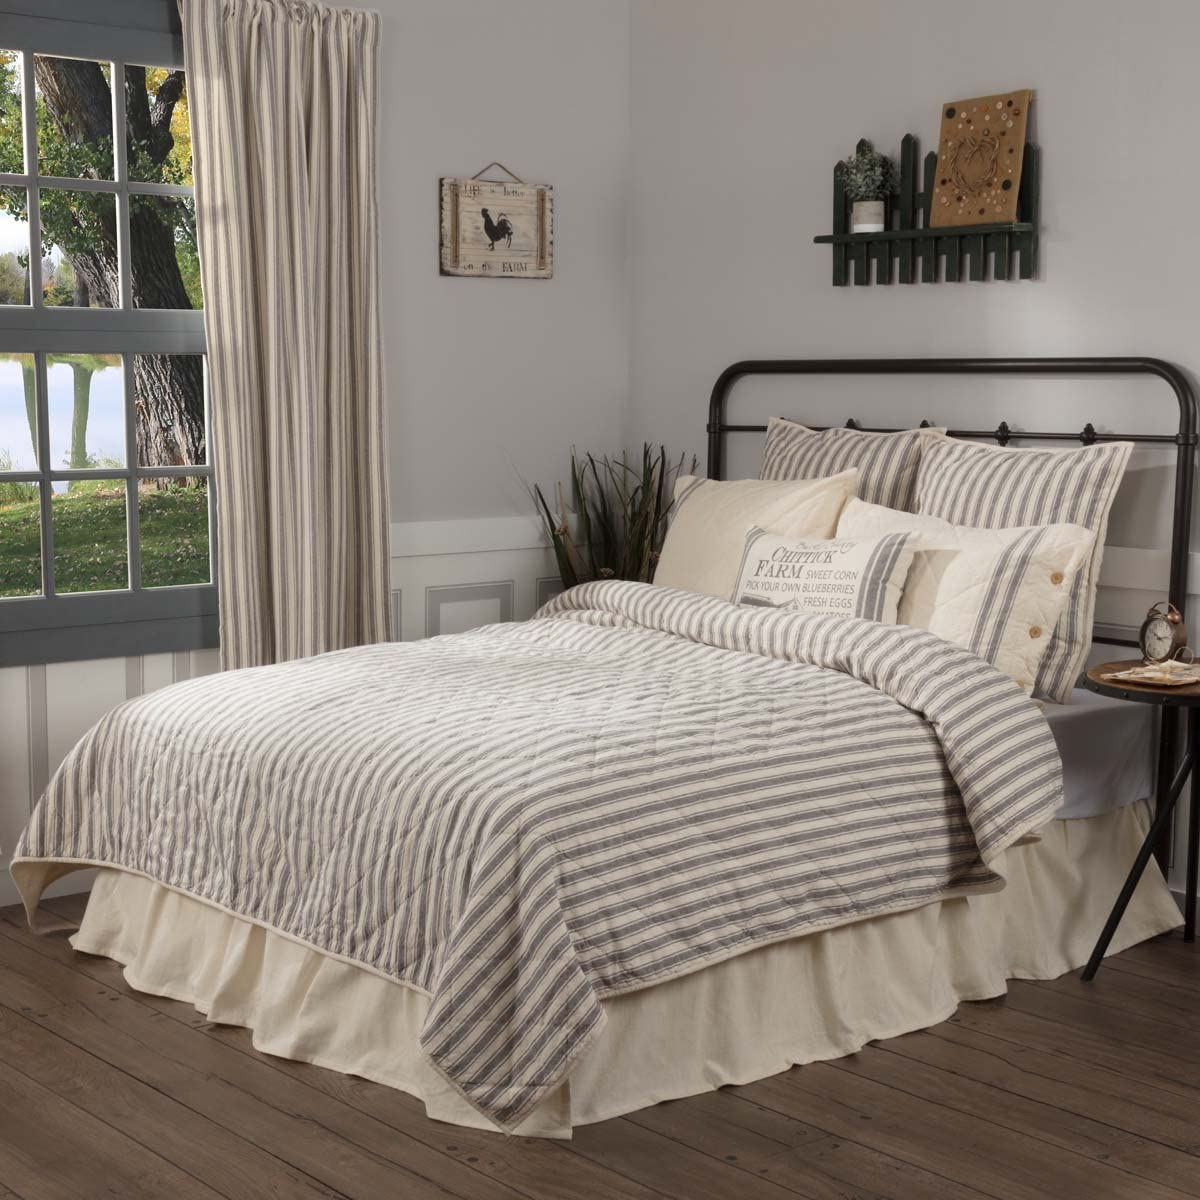 """Piper Classics Market Place Ticking Stripe Quilt, King, 95"""" x 105"""", Grey & Cream Quilted Modern Country Farmhouse Style Bedding"""